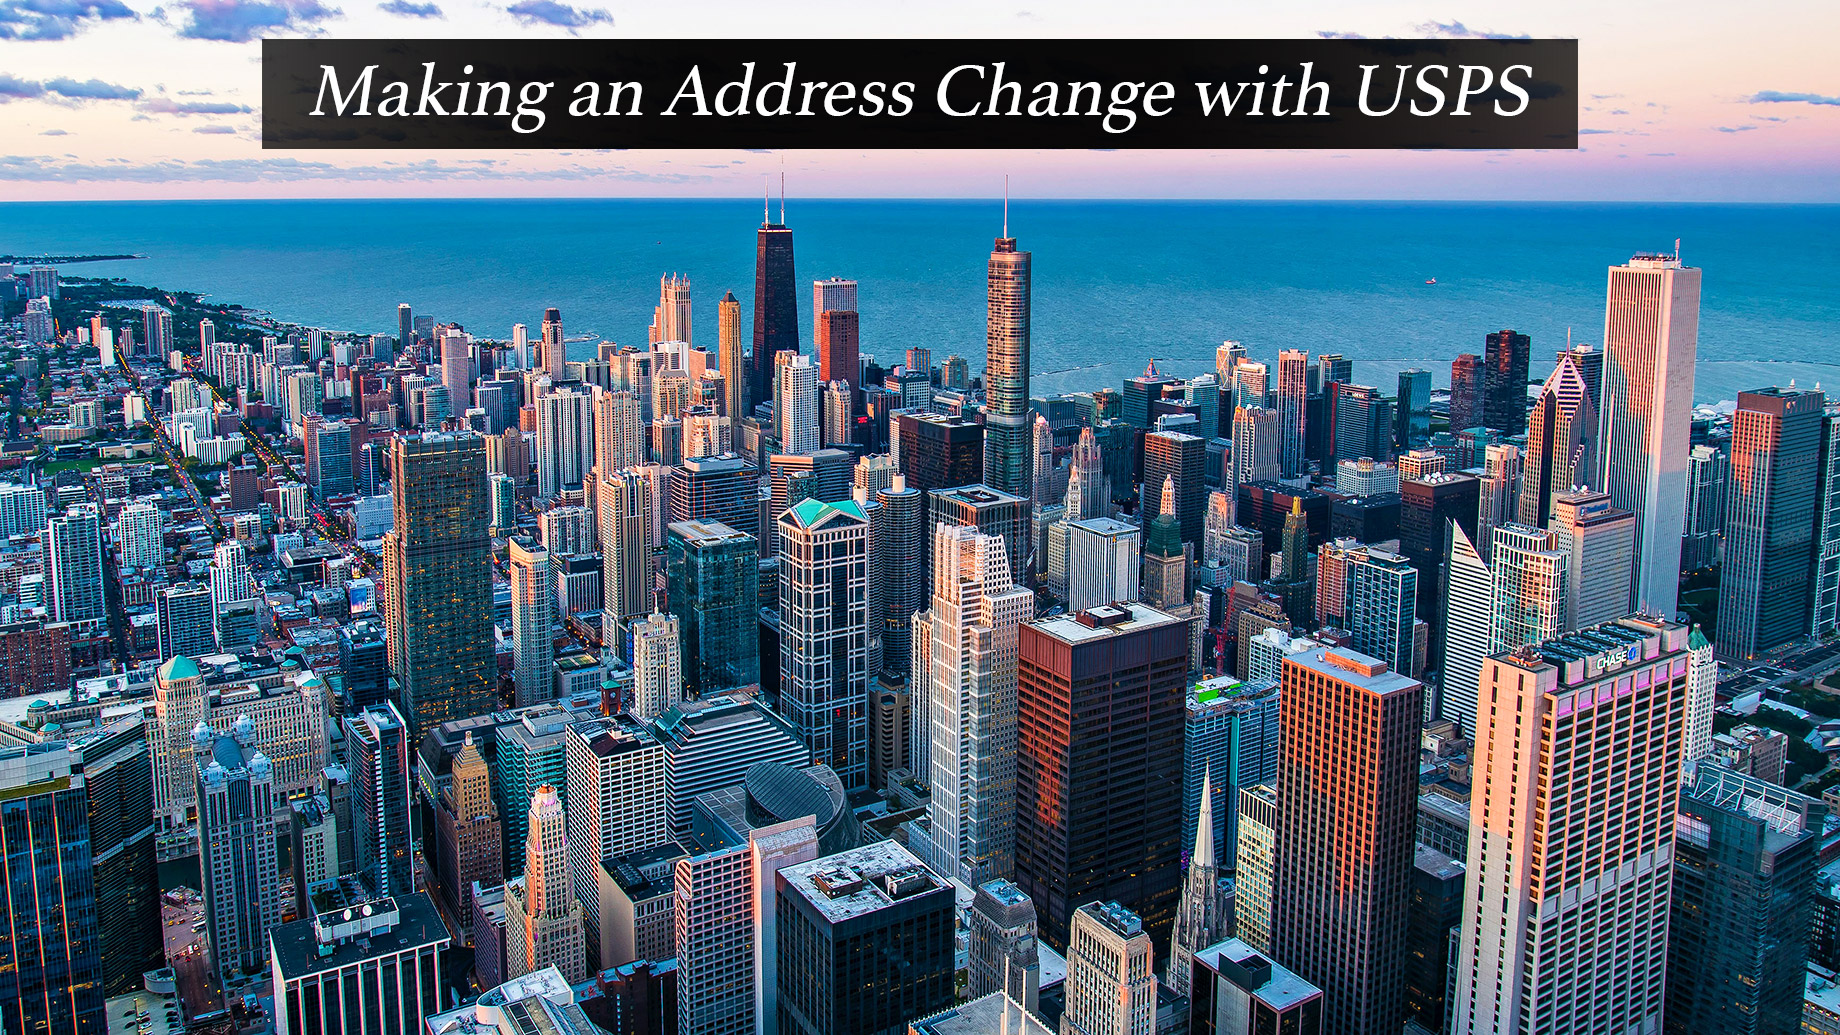 Making an Address Change with USPS - What You Should Know